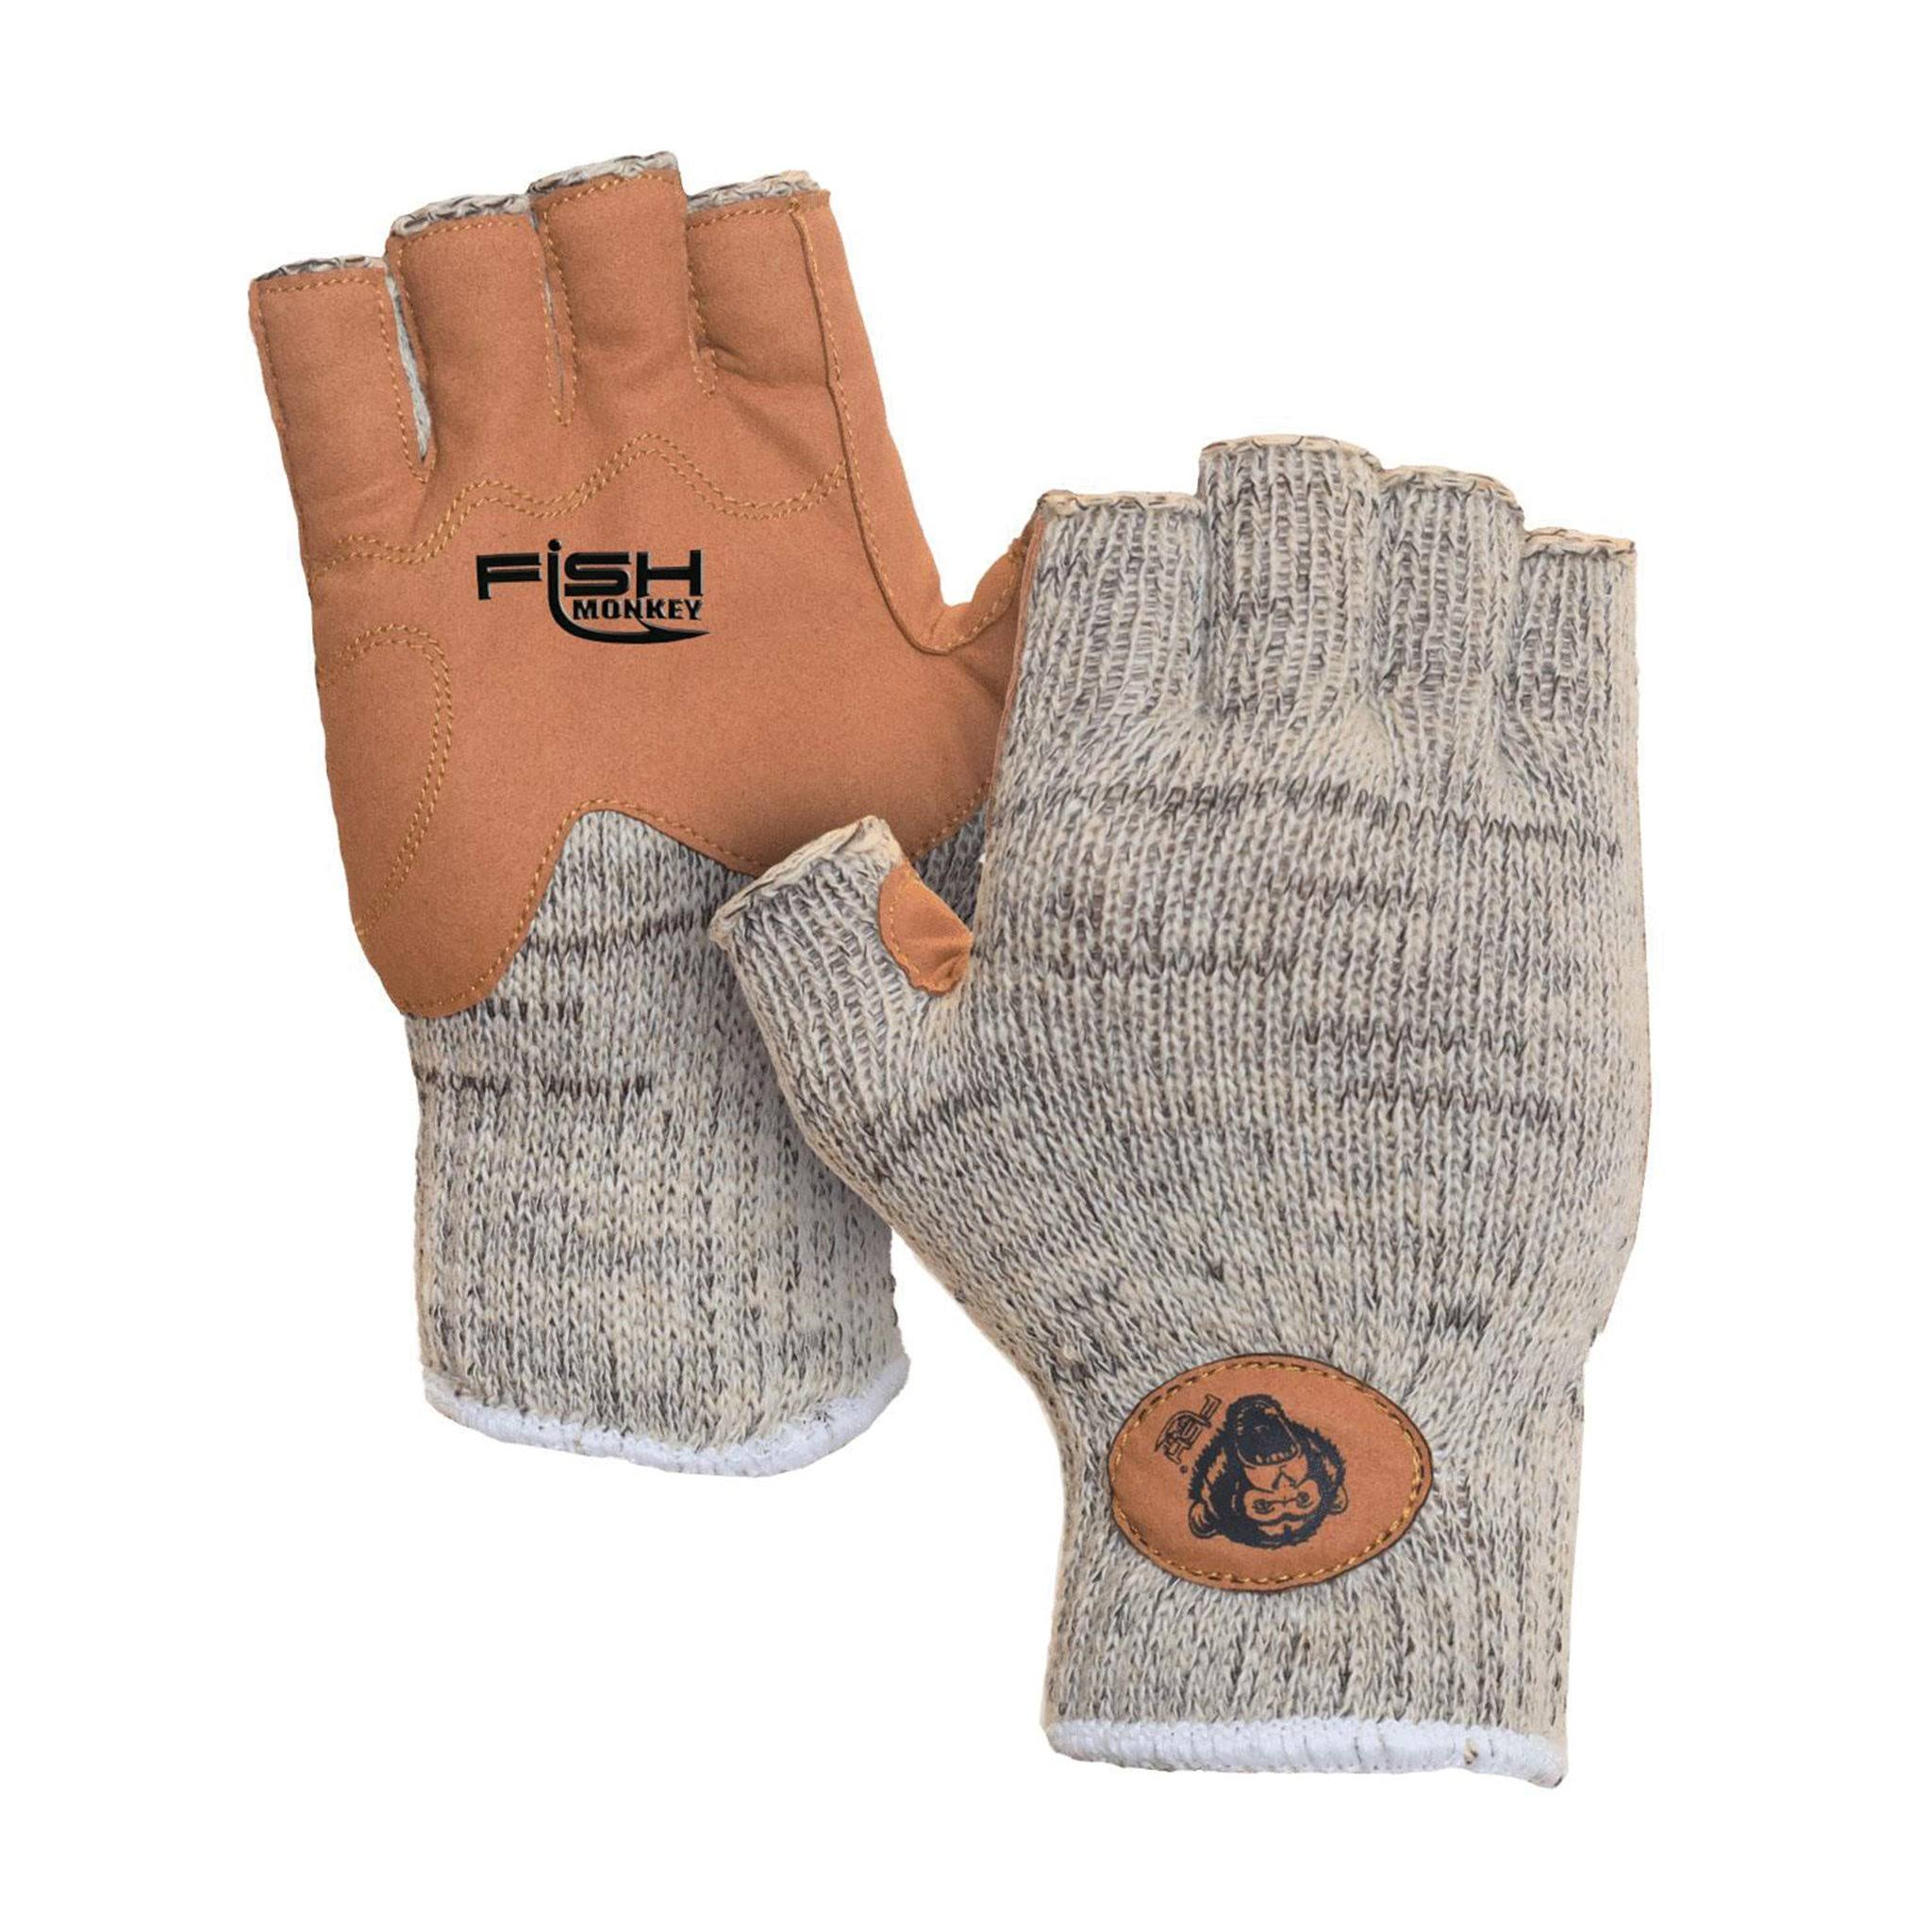 Fish Monkey Wooly Wool Half Finger Gloves - L/XL